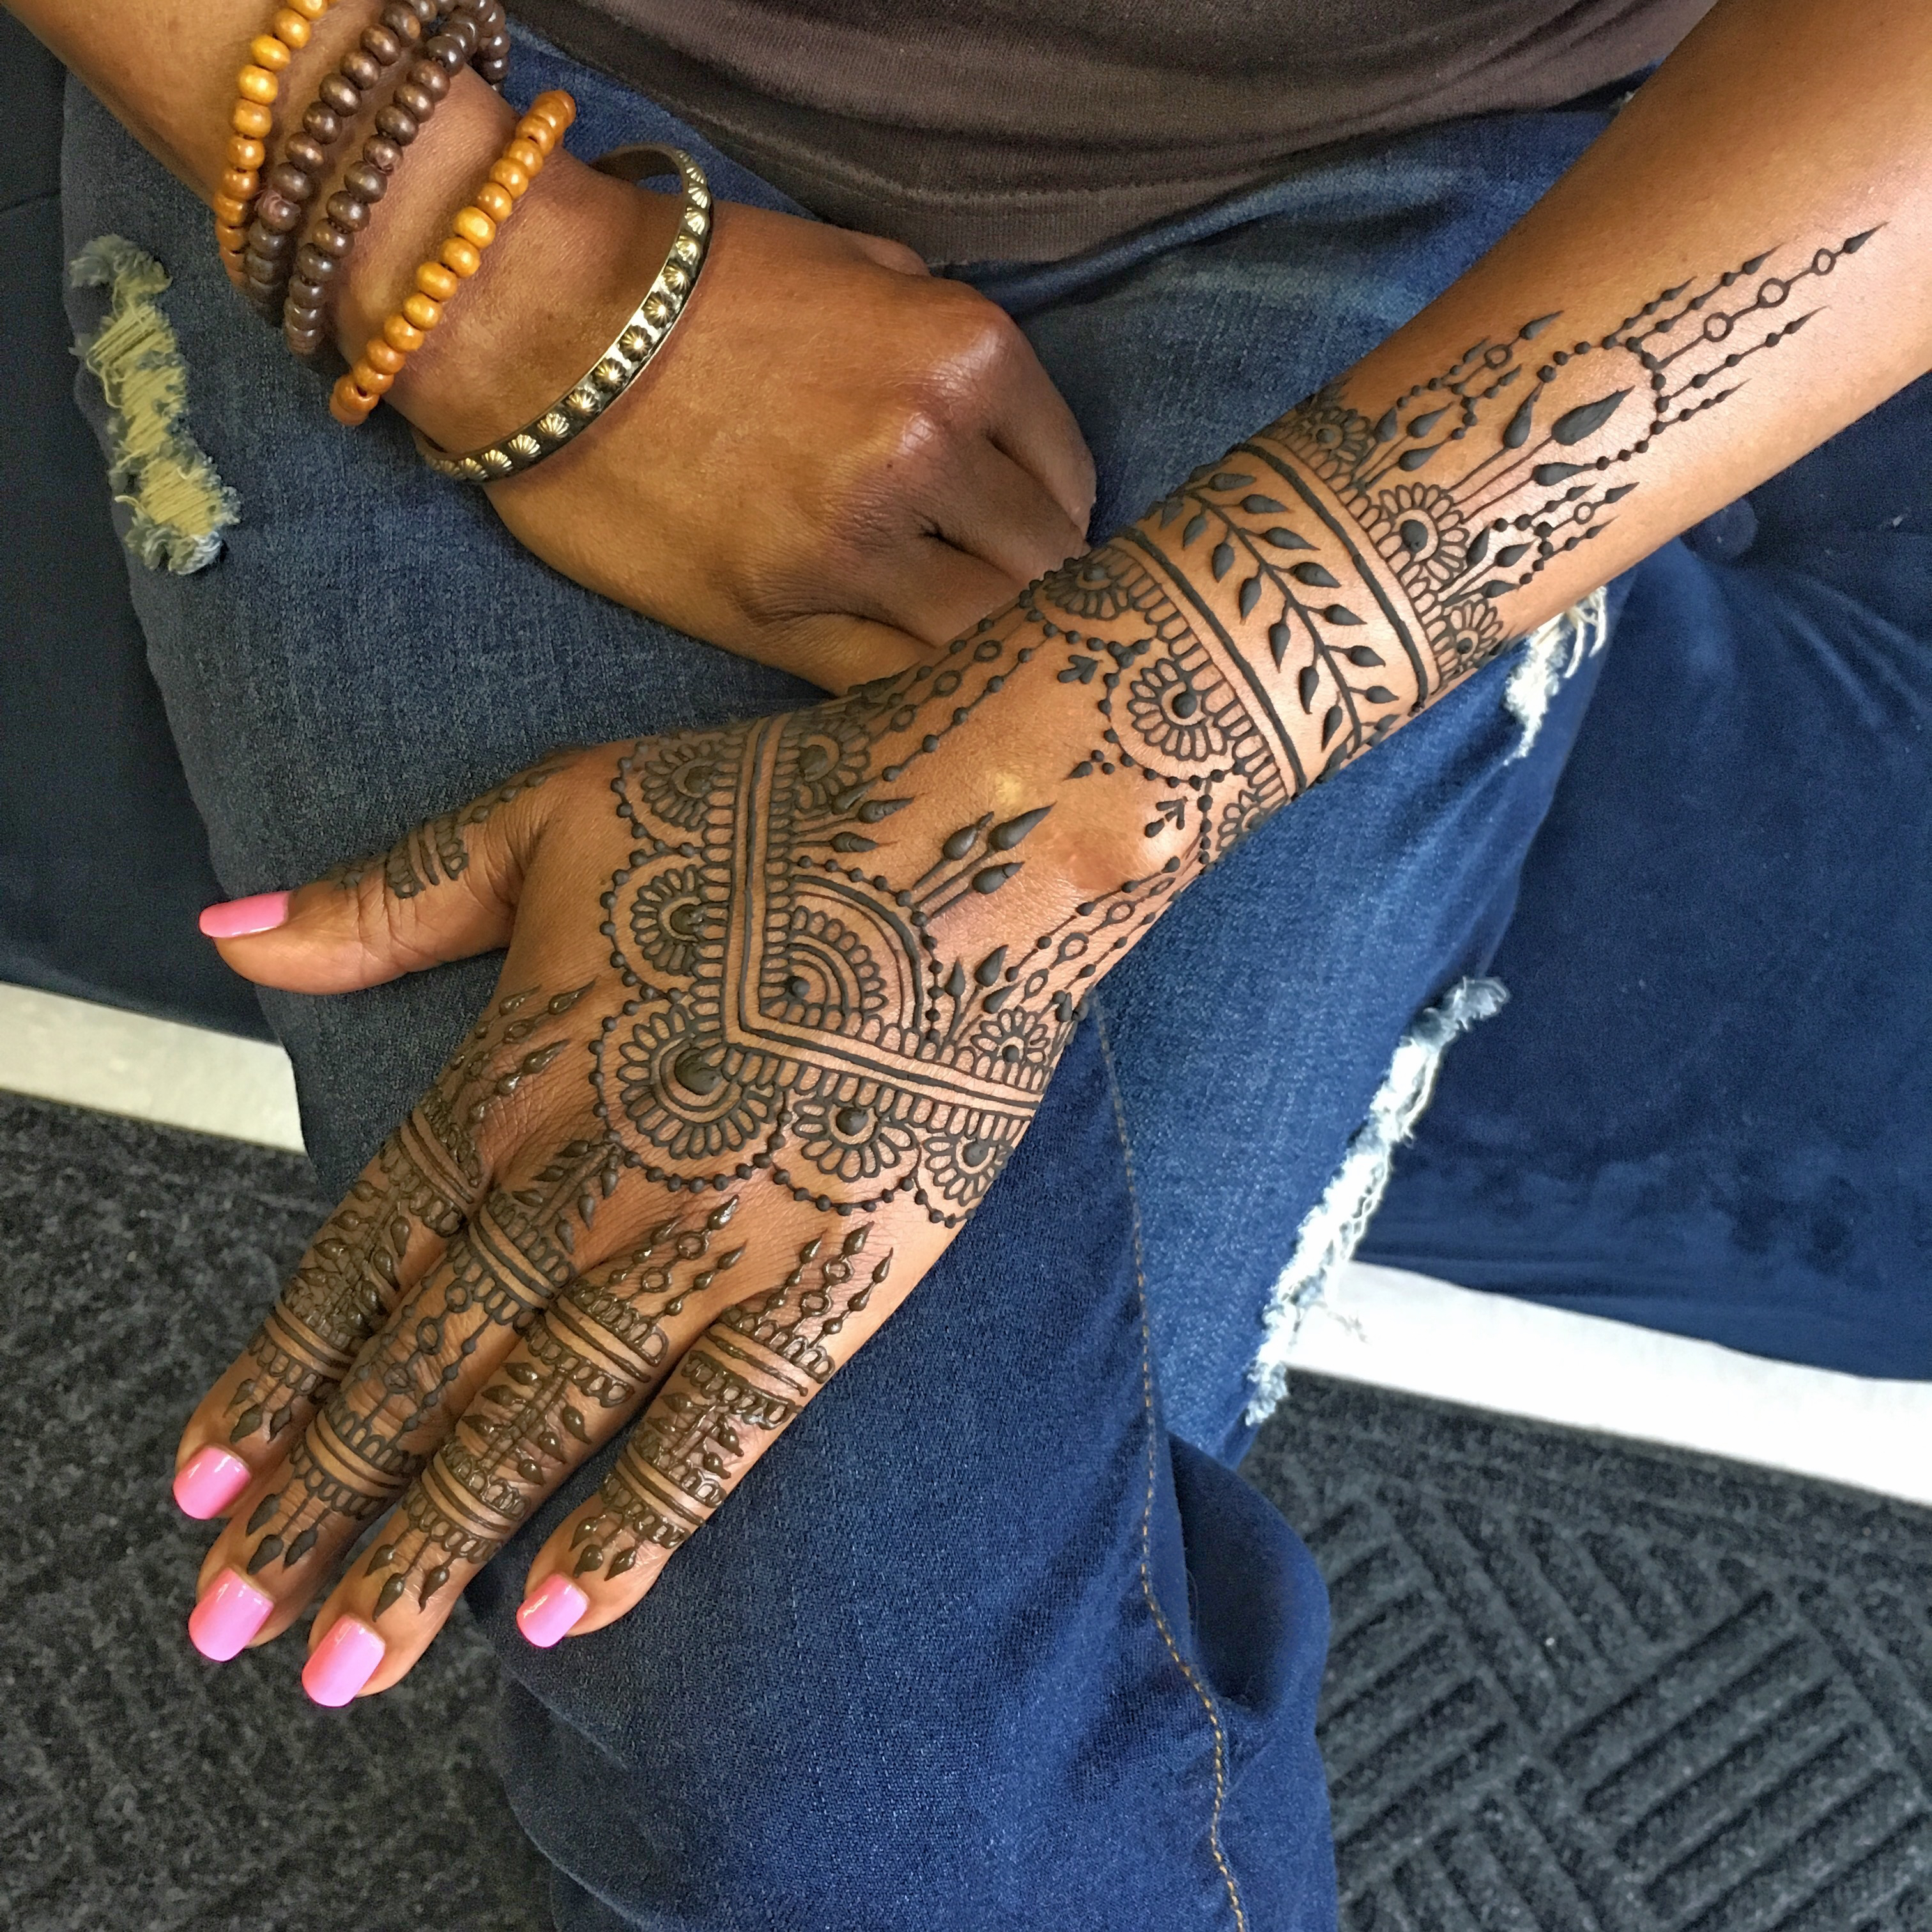 New years eve meditation henna henna blog spot are you excited about 2017 have you been making new plans and resolutions will you miss 2016 thecheapjerseys Choice Image